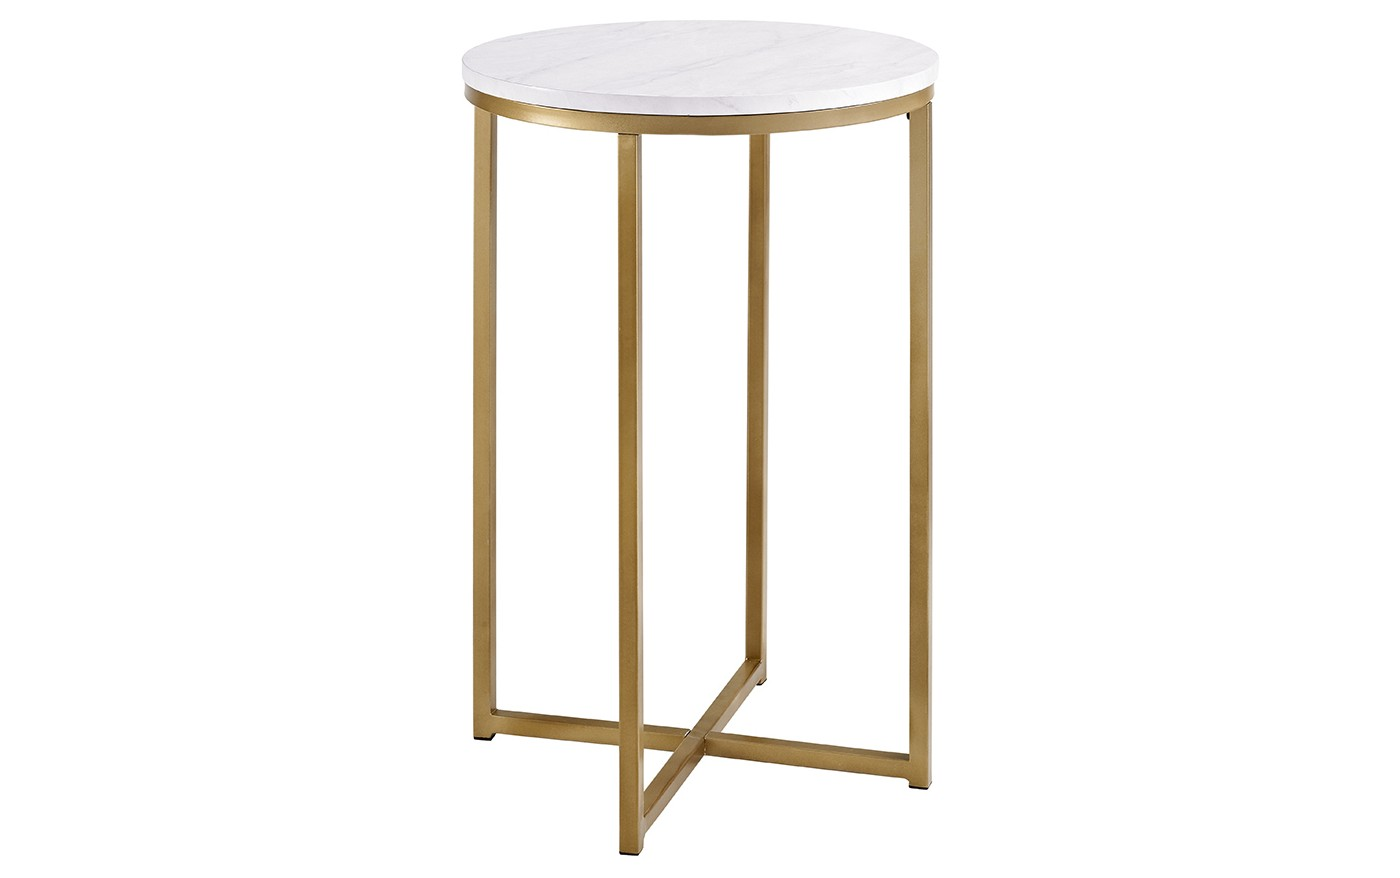 end tables target home that upgrade your living trestle accent table room for less than west elm outdoor lighting bunnings and chairs wide bedside one door cabinet beautiful lamps